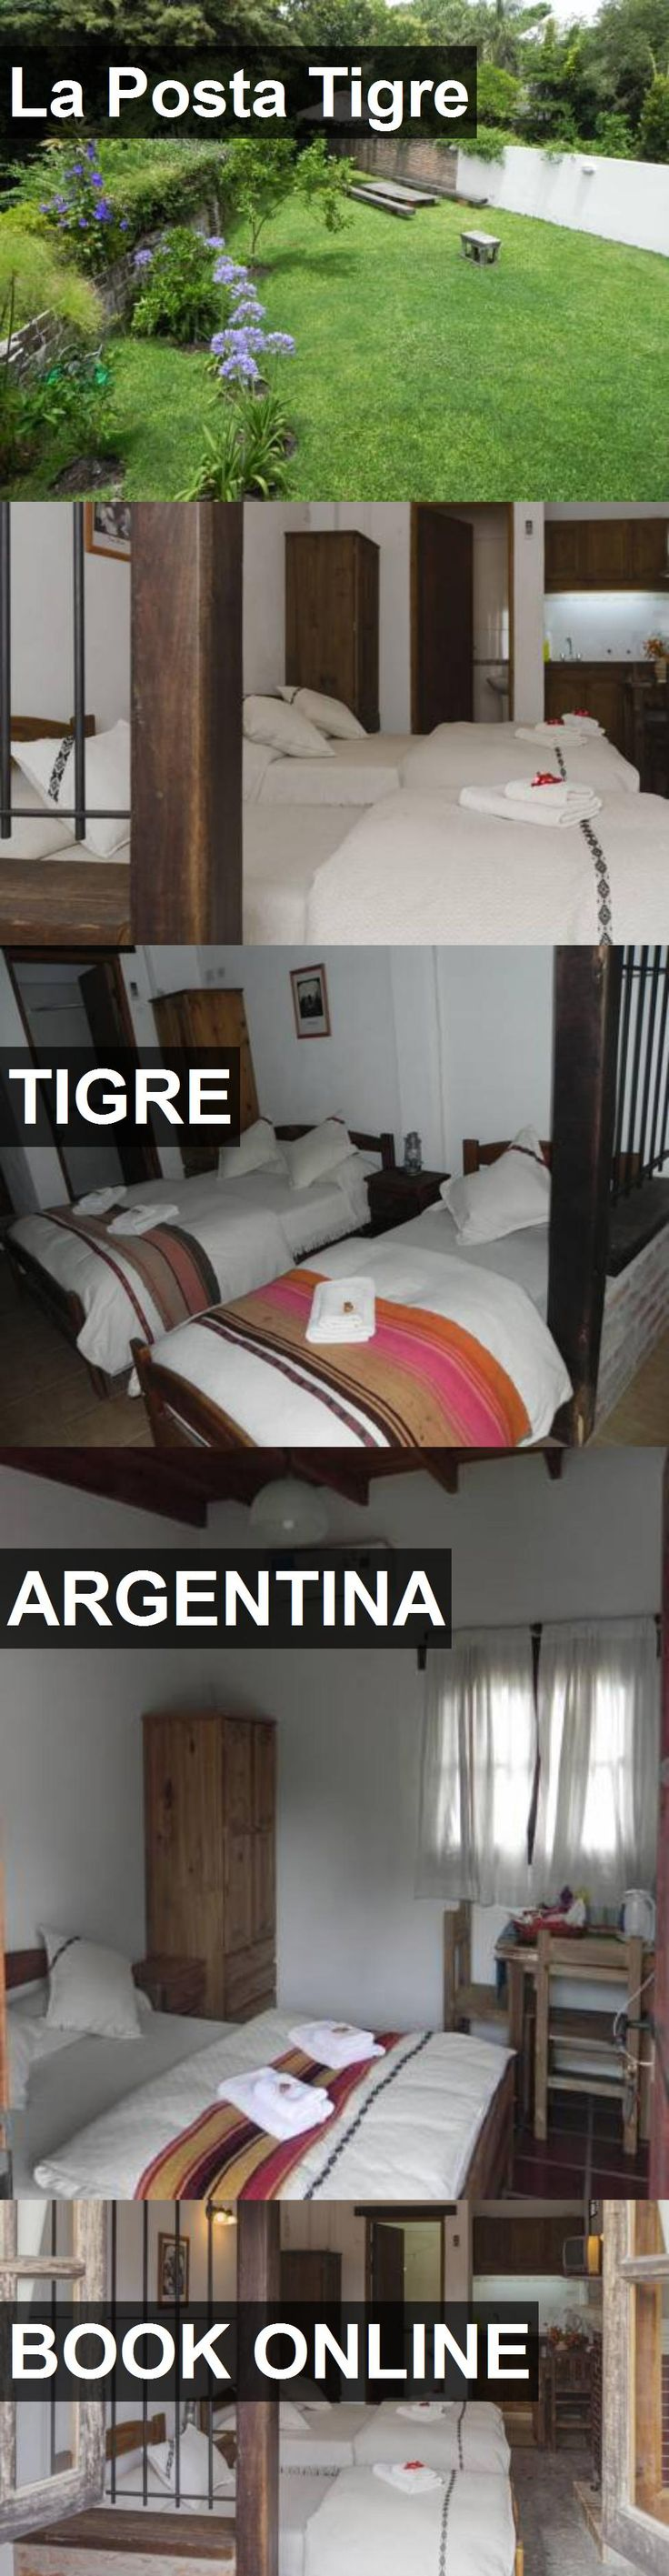 Hotel La Posta Tigre in Tigre, Argentina. For more information, photos, reviews and best prices please follow the link. #Argentina #Tigre #travel #vacation #hotel